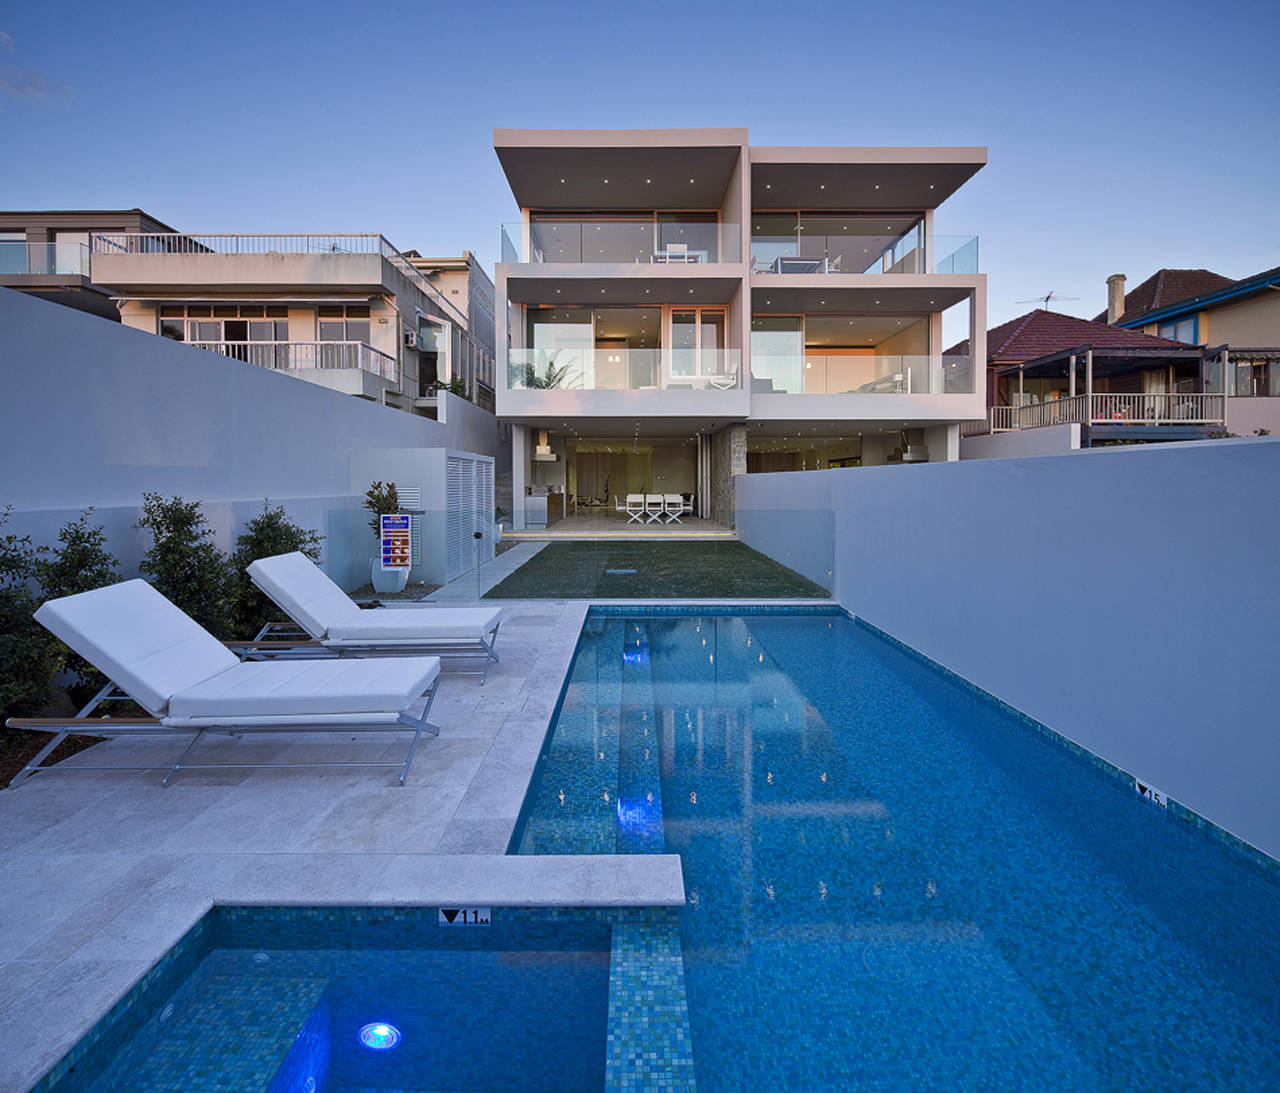 Portland street duplex by mpr design group karmatrendz for Modern house design with pool